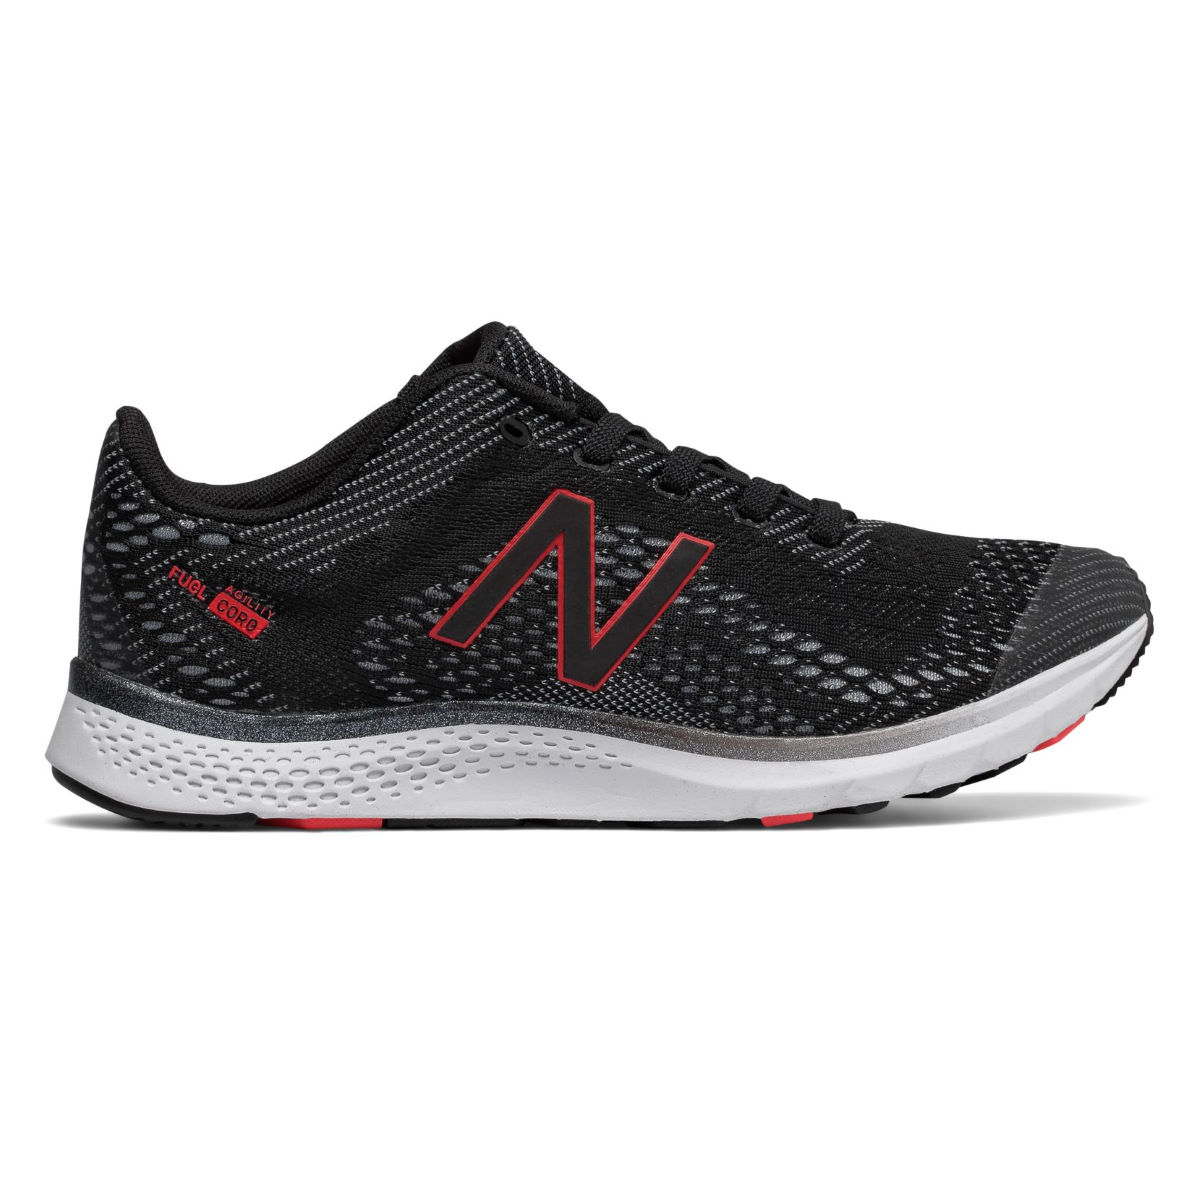 Chaussures Femme New Balance Fuel Core Agility - UK 5 Noir/Rose